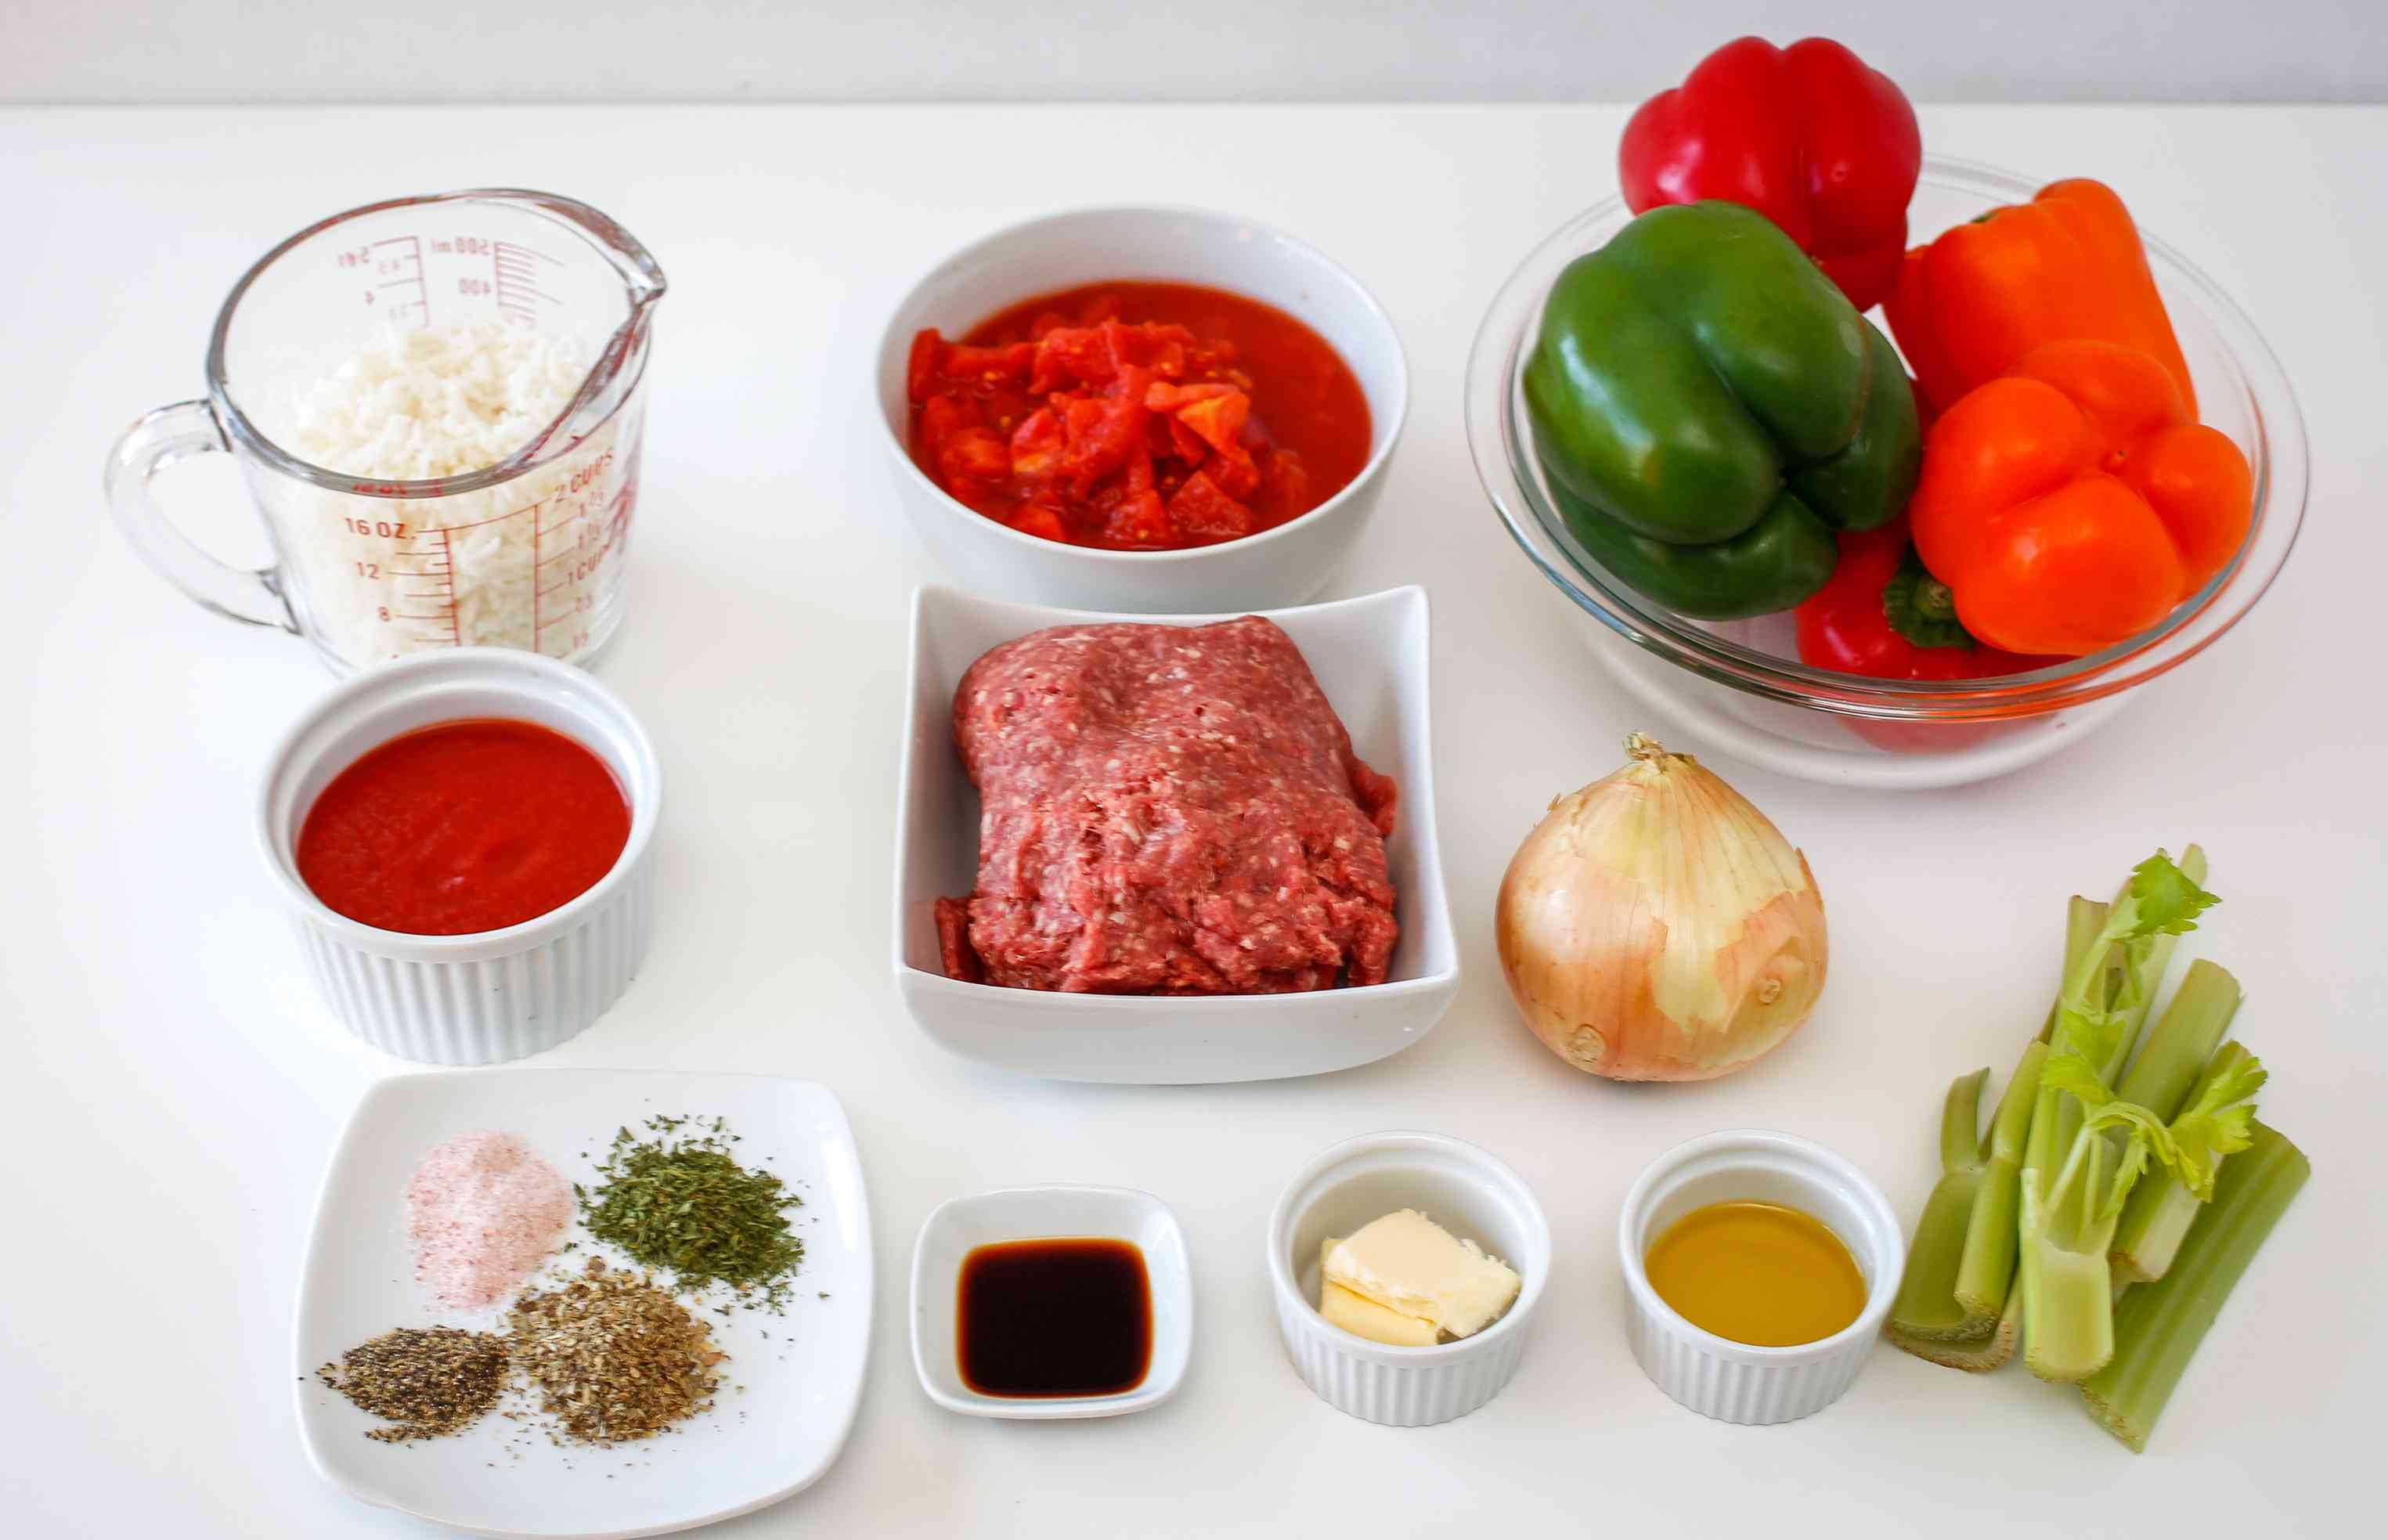 Ingredients for stuffed peppers with ground beef and rice